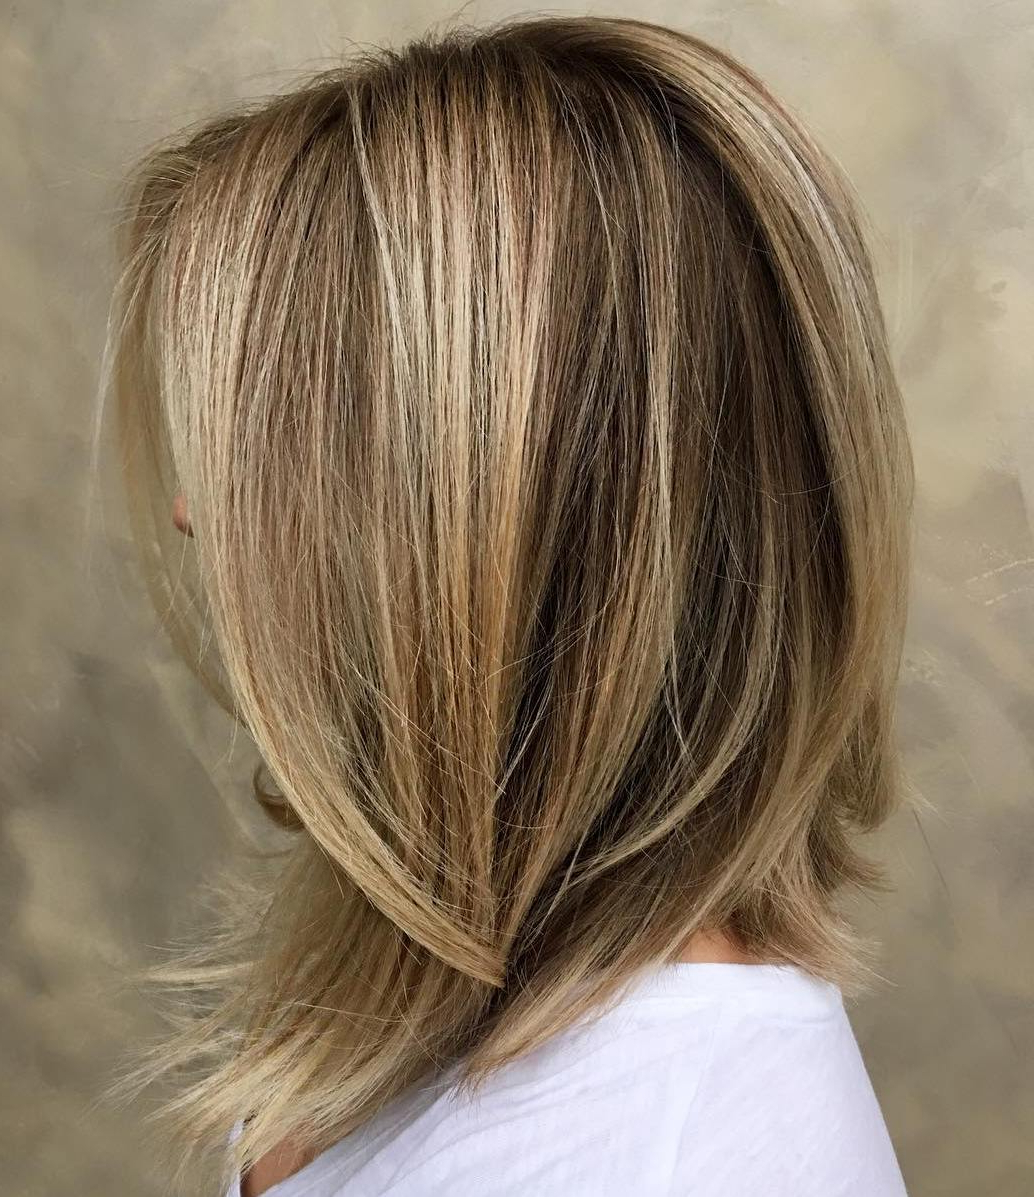 60 Inspiring Long Bob Hairstyles And Lob Haircuts 2018 With Disheveled Brunette Choppy Bob Hairstyles (View 15 of 20)